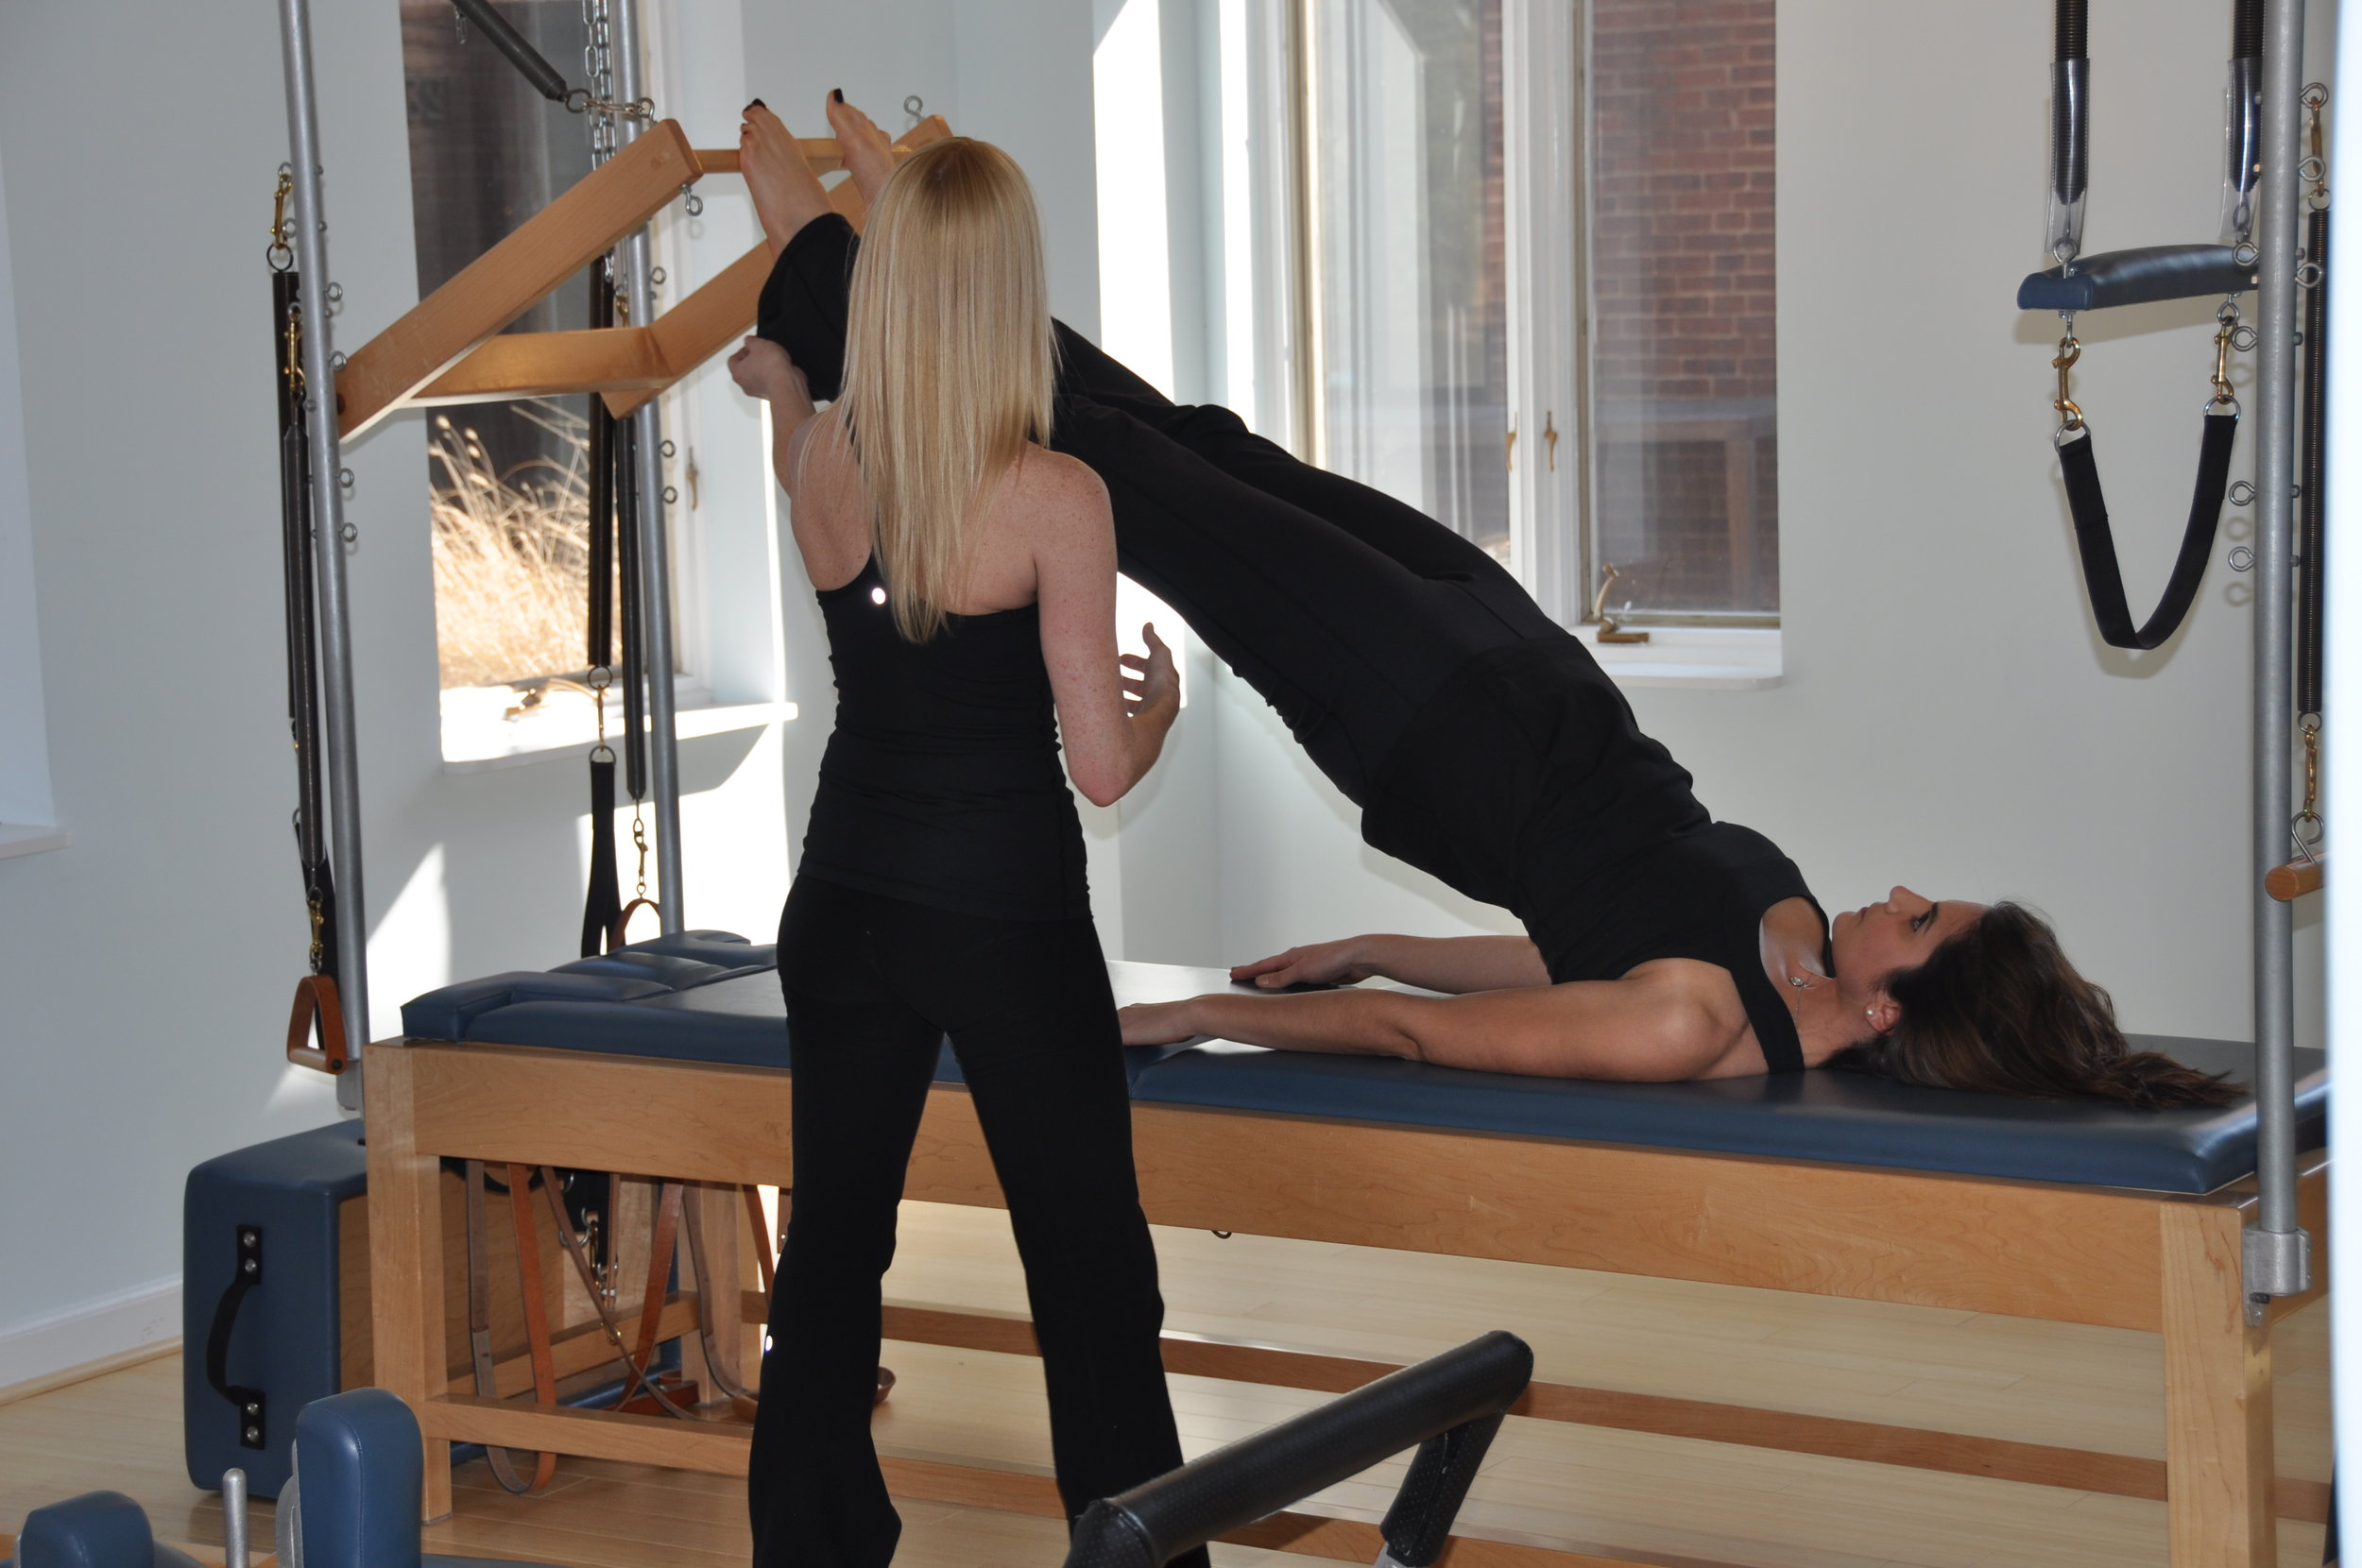 The Studio - Professional athletes, yoga and Pilates teachers, recovering cardio and group class enthusiasts, pre and postnatal practitioners, across all ages and skill levels comprise the unique community at Georgetown Pilates. Although most classes are 1:1 or 1:2 the studio has become a tranquil and welcoming space encouraging all those who practice here to show up as themselves, find acceptance, and tap into a larger community to support wellness of the body and mind.